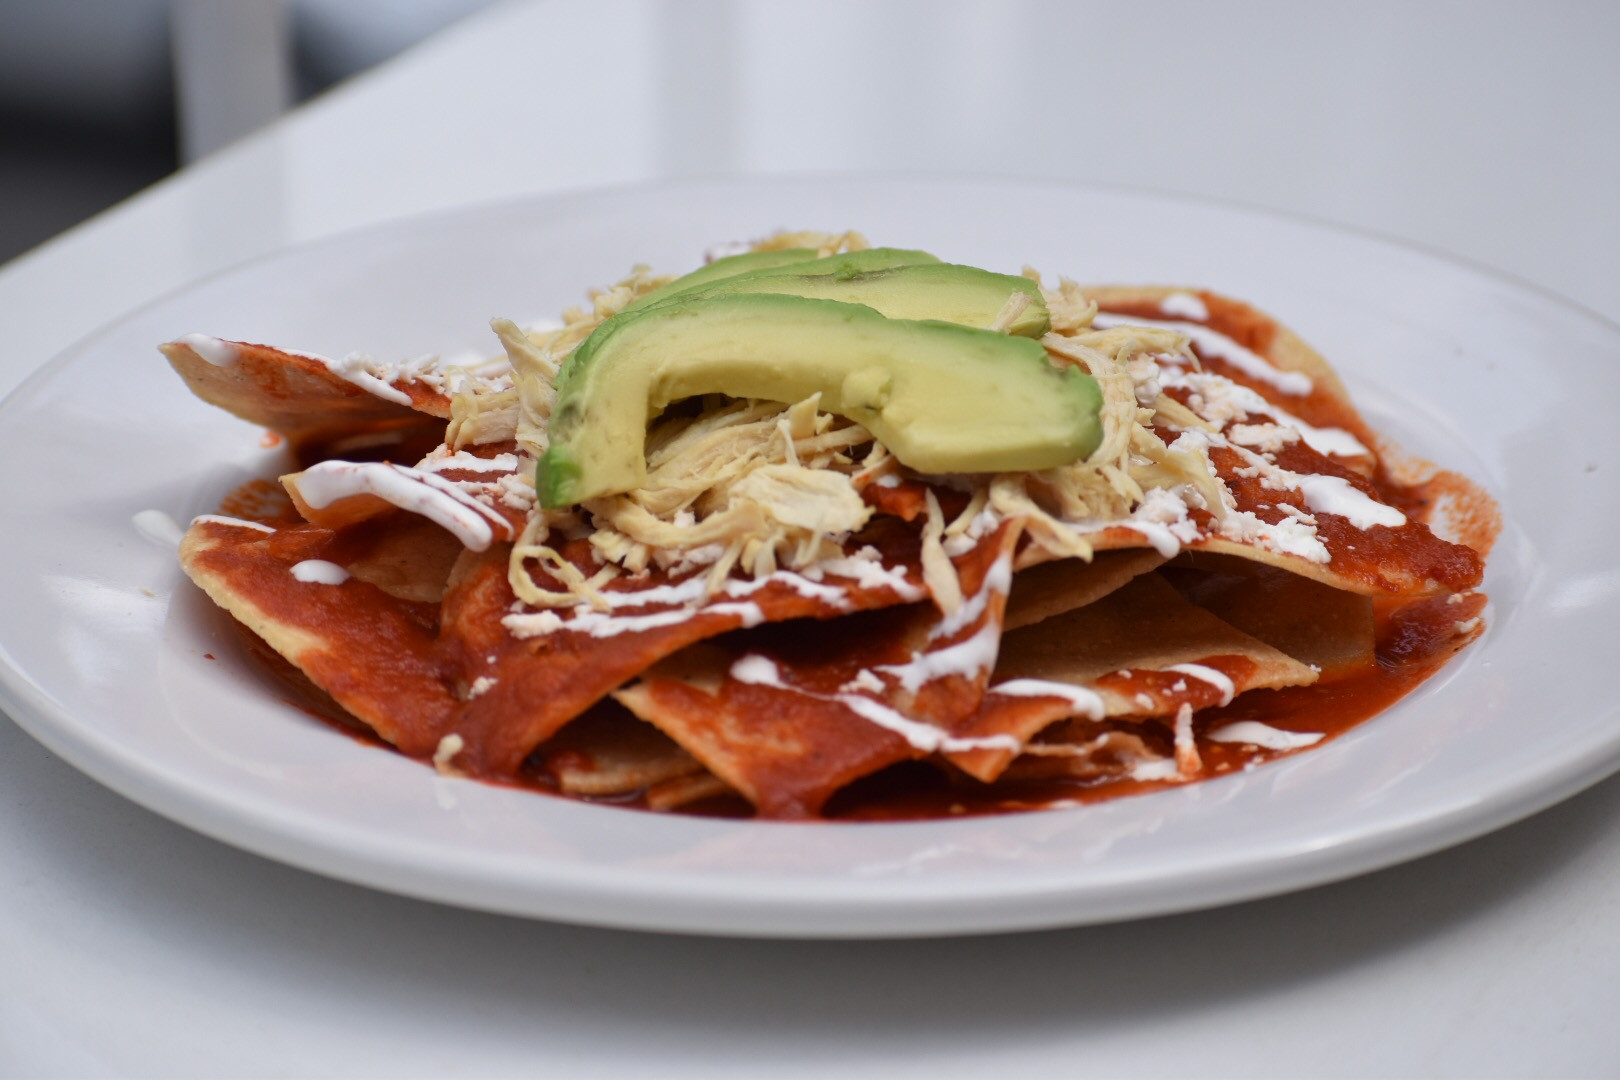 Aura Cocina Mexicana | Cooking Classes | Mexico City | Mexican Breakfast hands-on Cooking Class | Chilaquiles